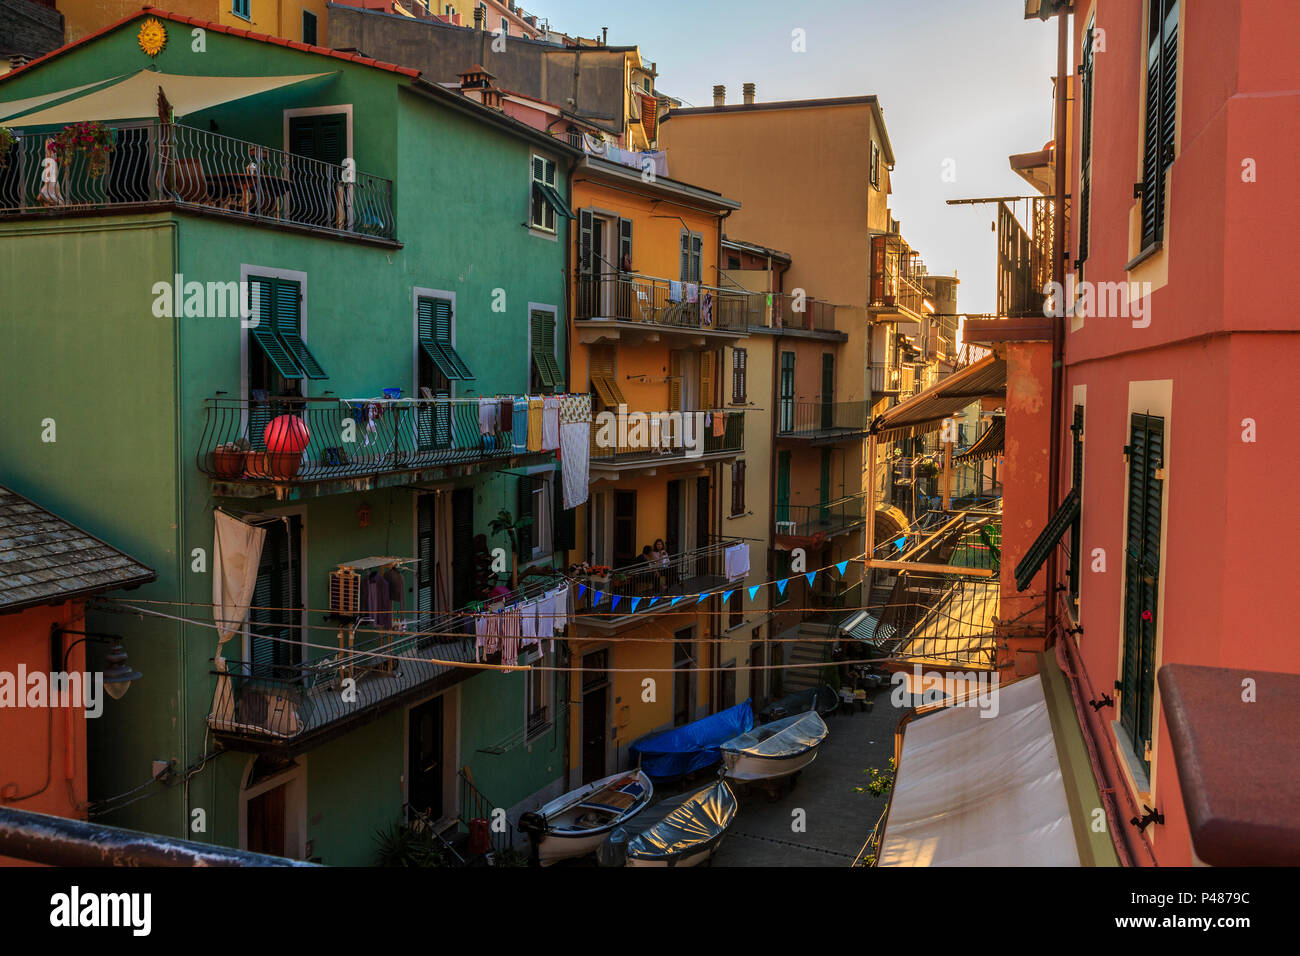 Manarola, Cinque Terre, quiet late afternoon street scene with colorful homes and signs of everyday life. - Stock Image